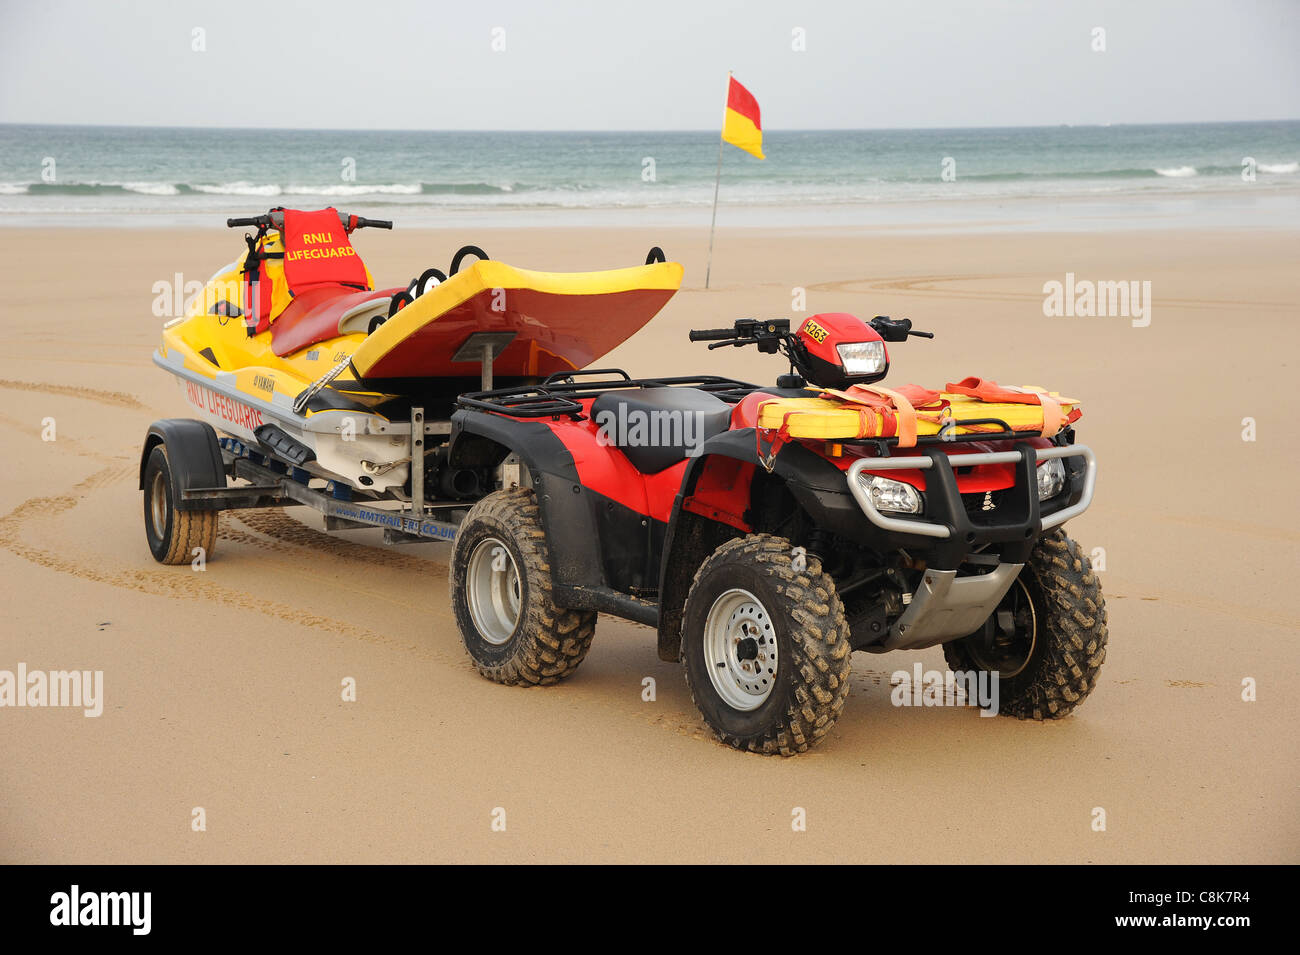 cornwall england an rnli lifeguard 39 s quad bike and jet ski pwc stock photo 39761208 alamy. Black Bedroom Furniture Sets. Home Design Ideas